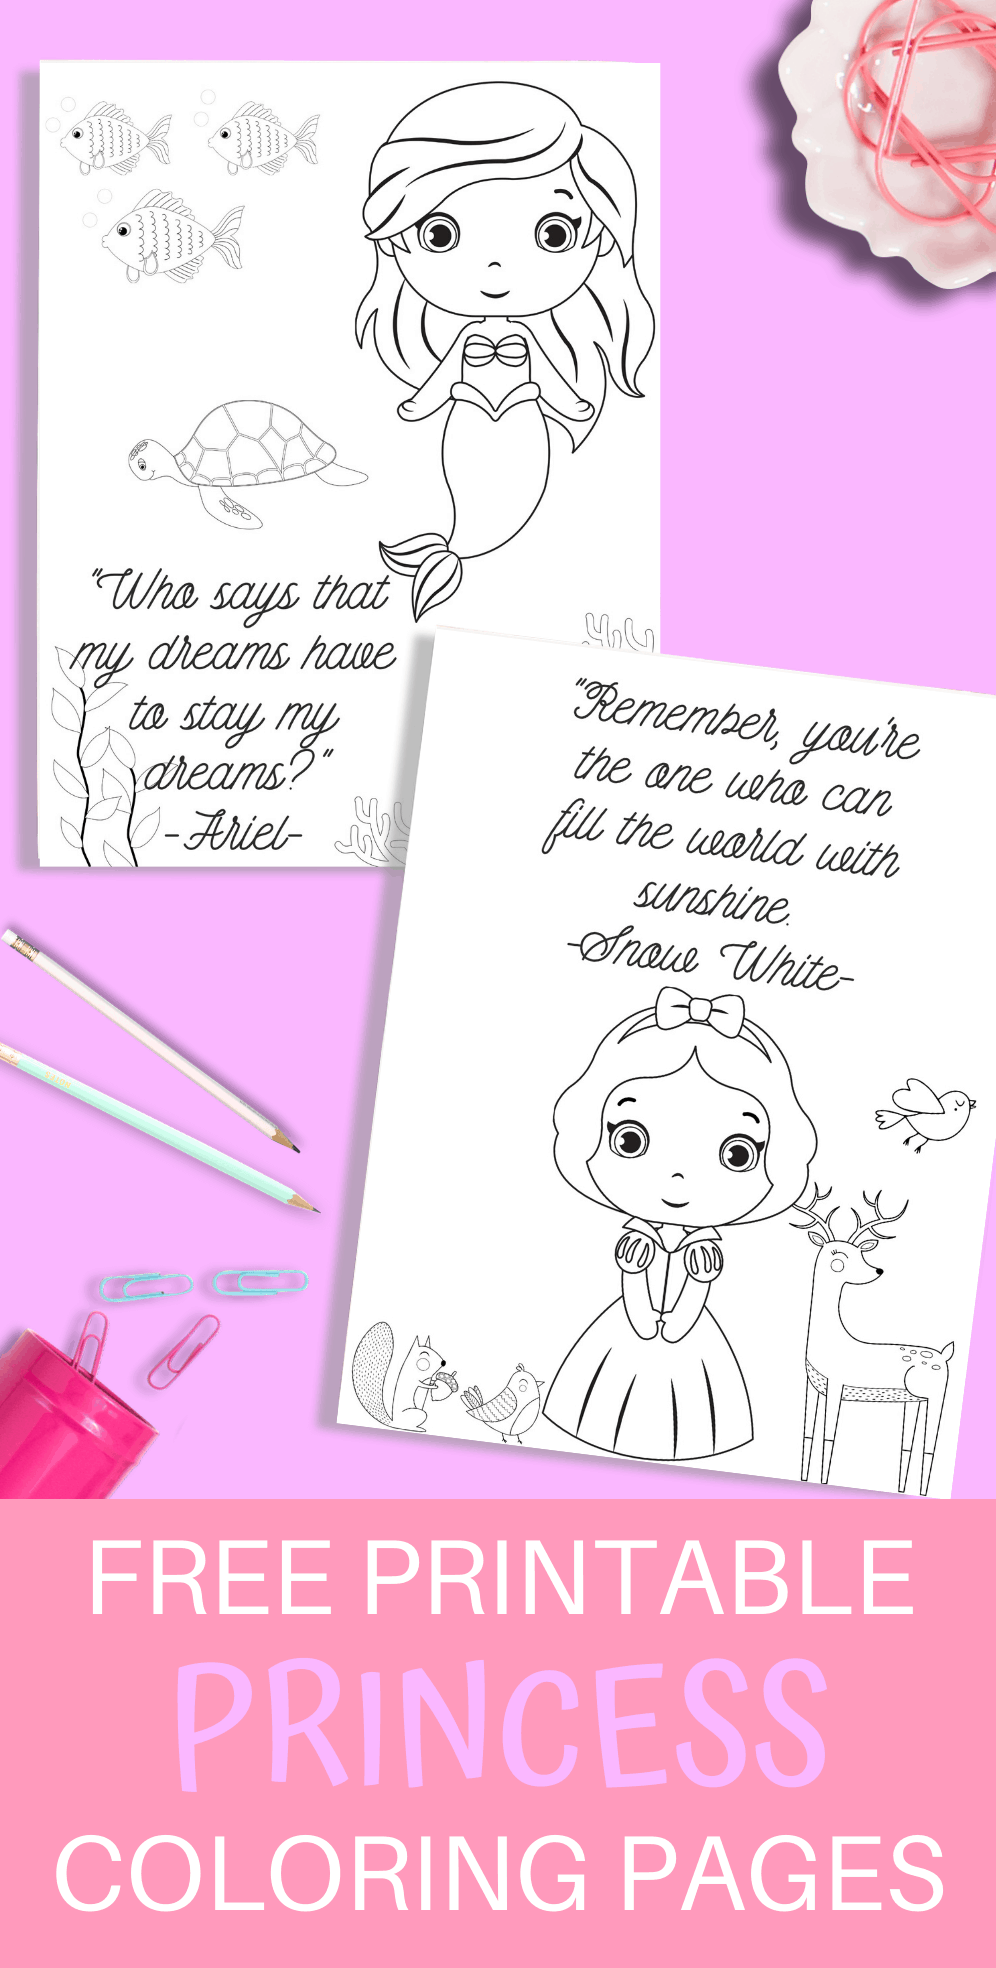 These free princess printable coloring pages are so much fun to do with your kids! Just print them out and start coloring! #coloringpages #free #printable #kidactivities #fun #princess